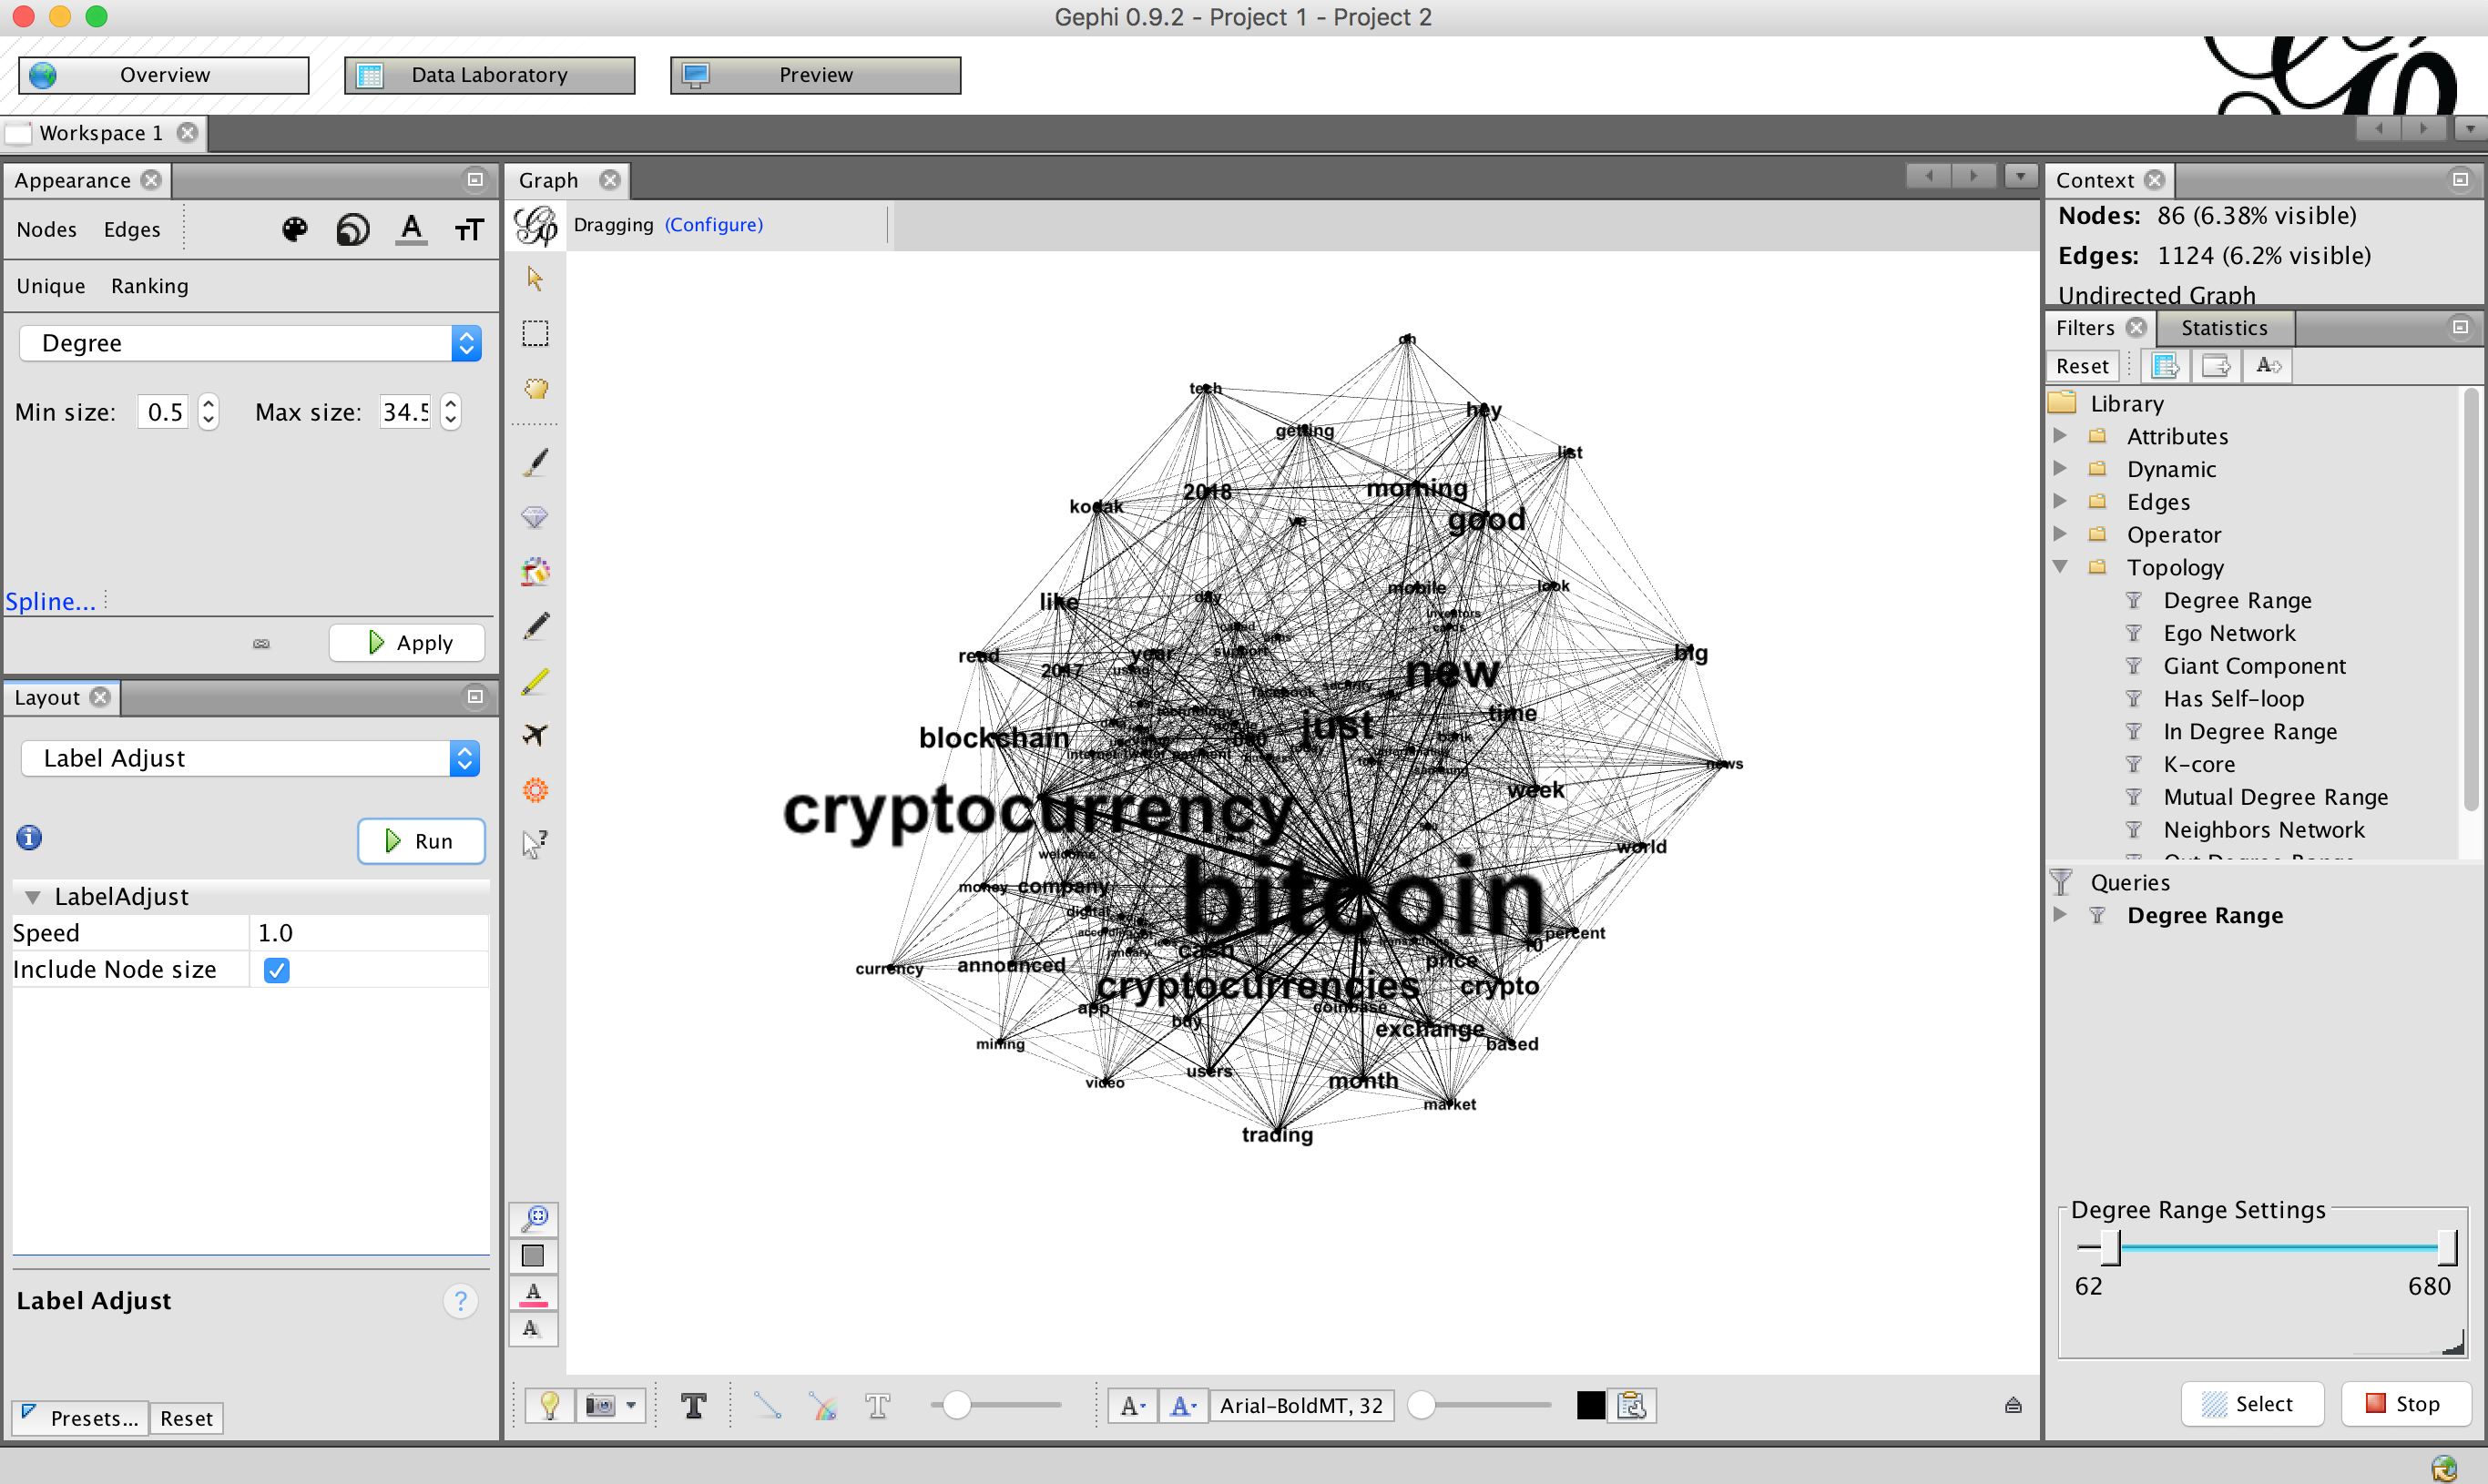 Final product in Gephi after some effort